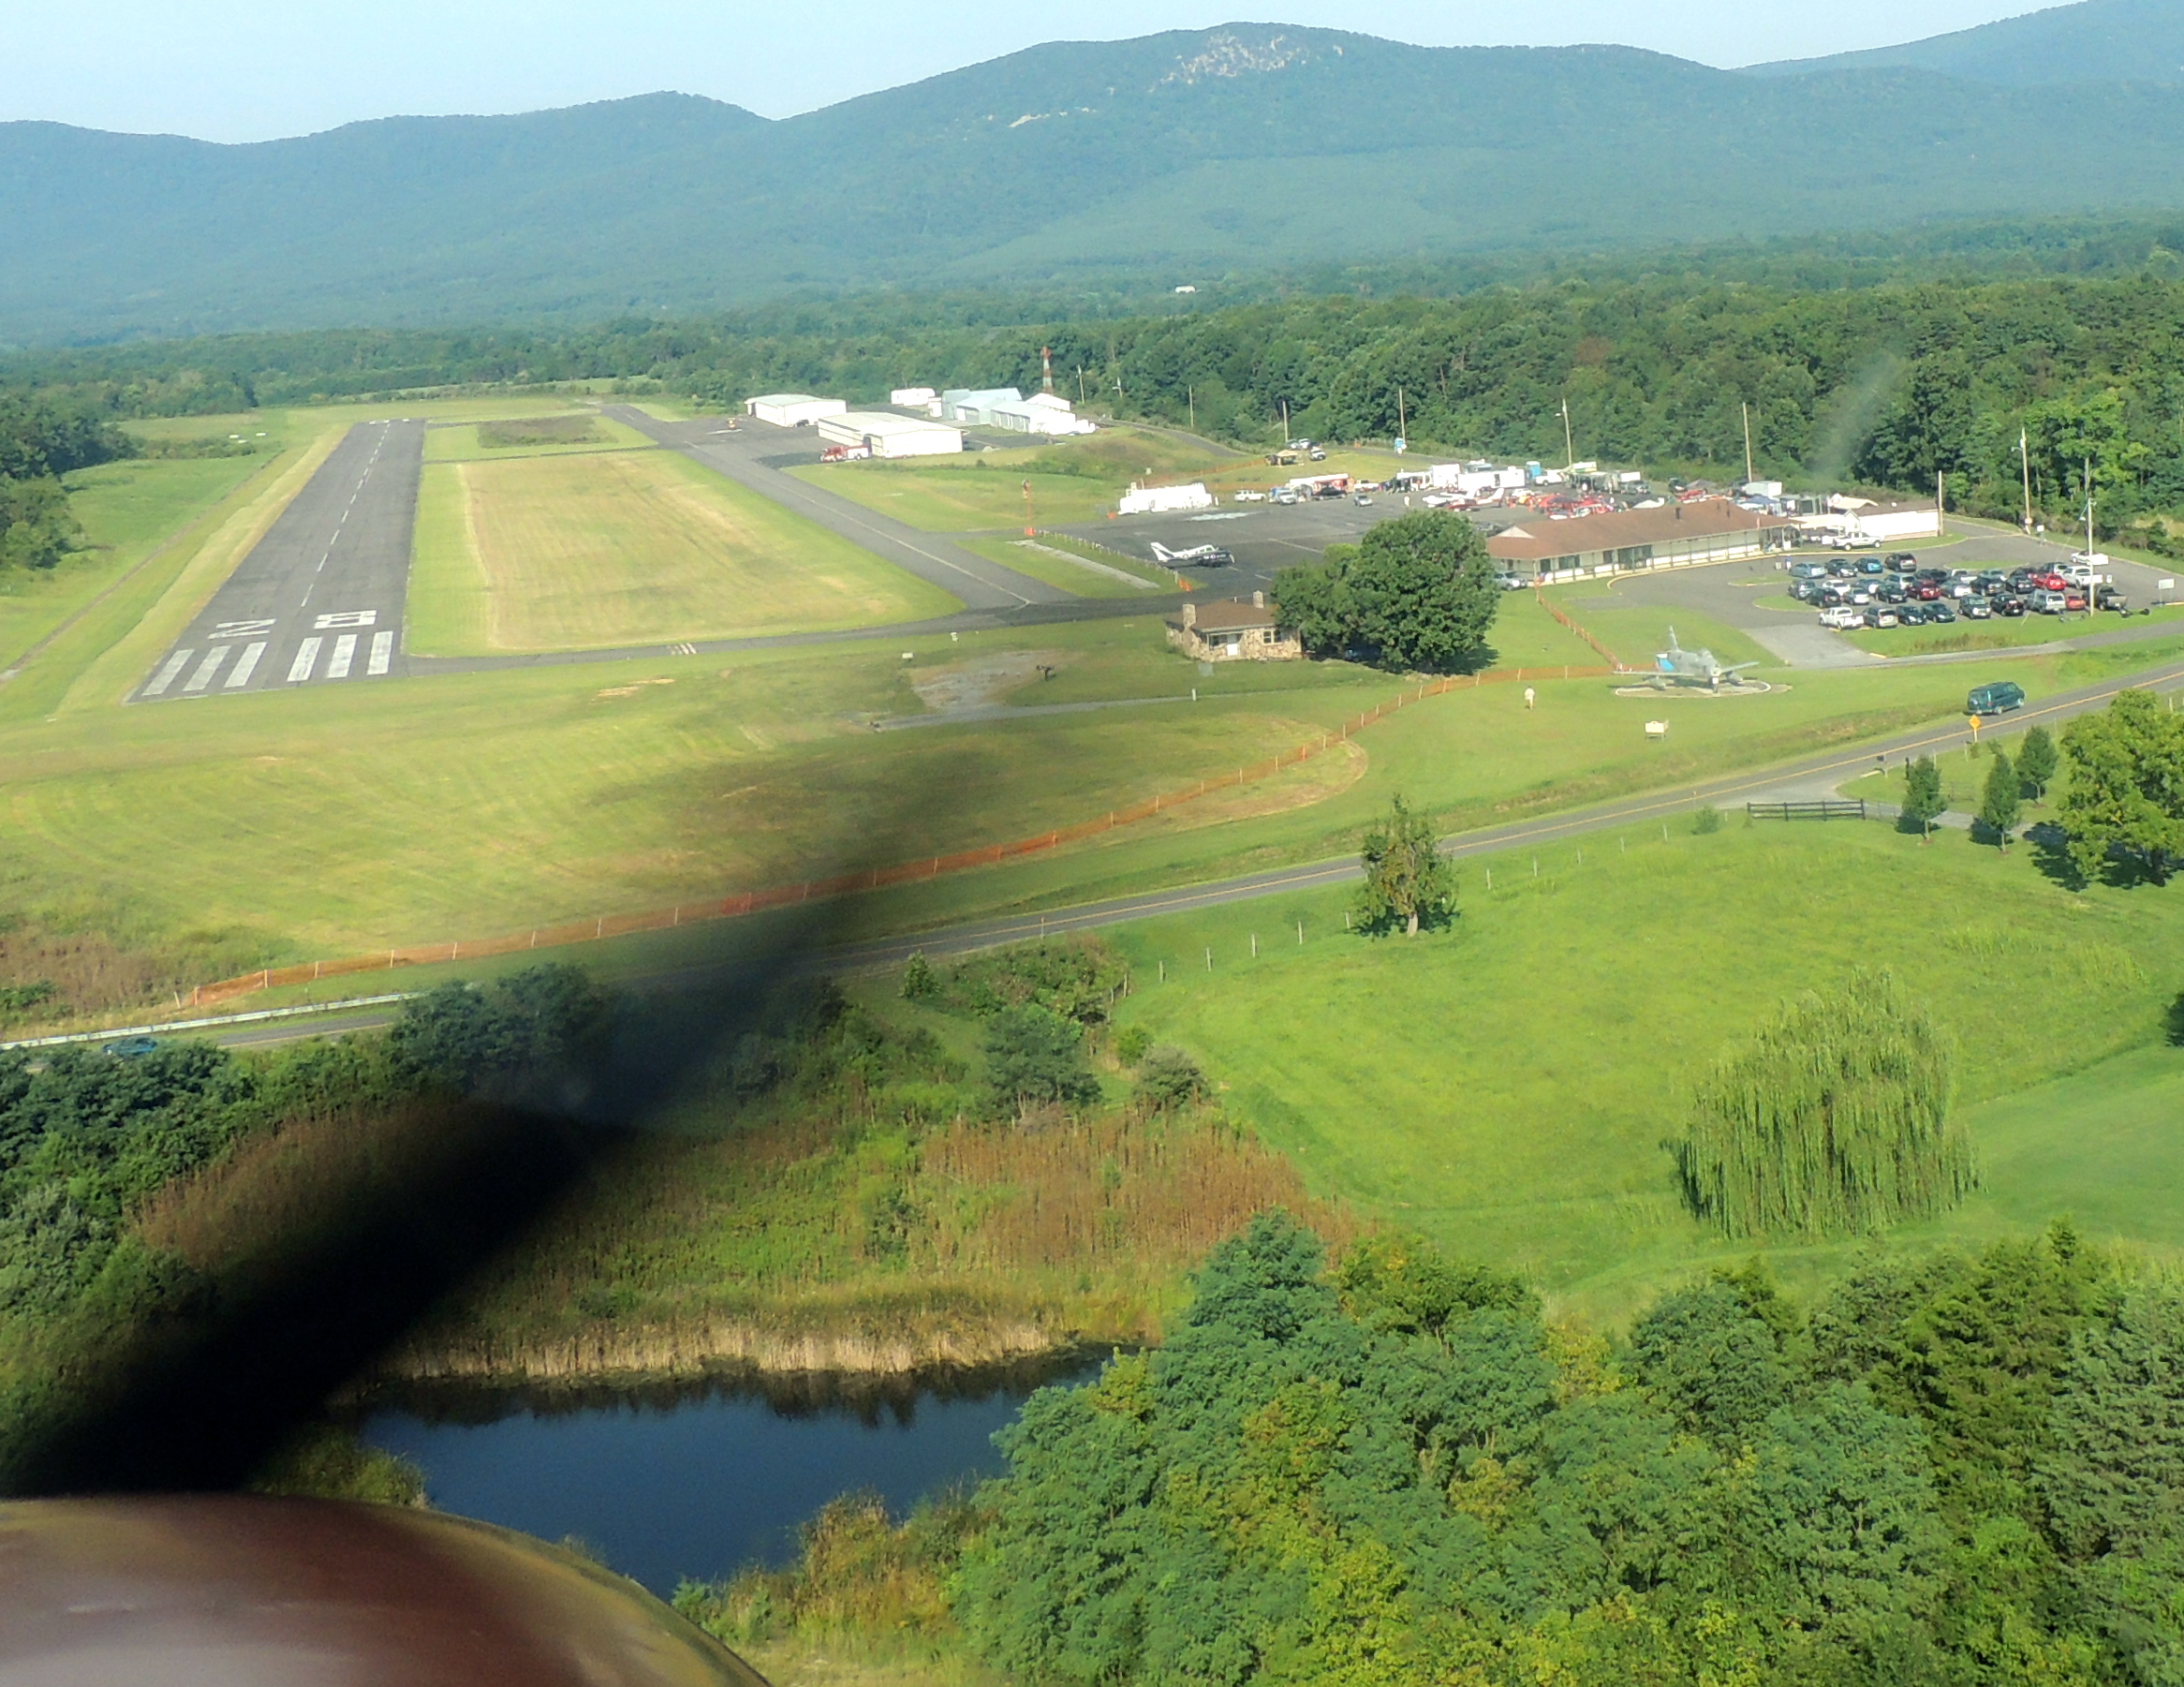 Arriving at Front Royal for the Virginia Air Show